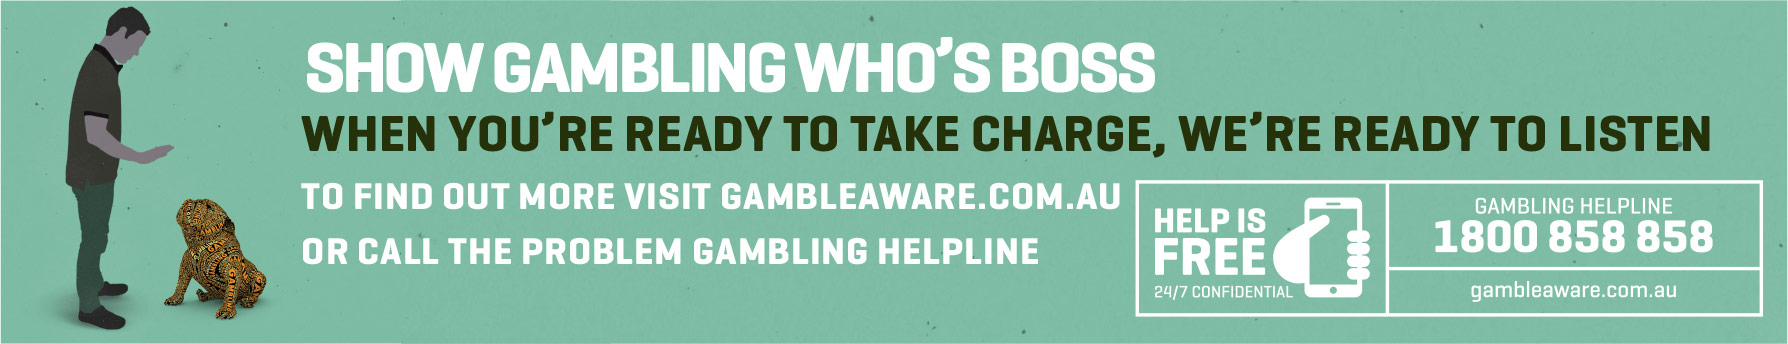 Image of man in control of a dog with the text: show gambling who's boss, when you're ready to take charge, we're ready to listen. To find out more visit gambleaware.com.au or call the Problem Gambling Helpline 1800 858 858